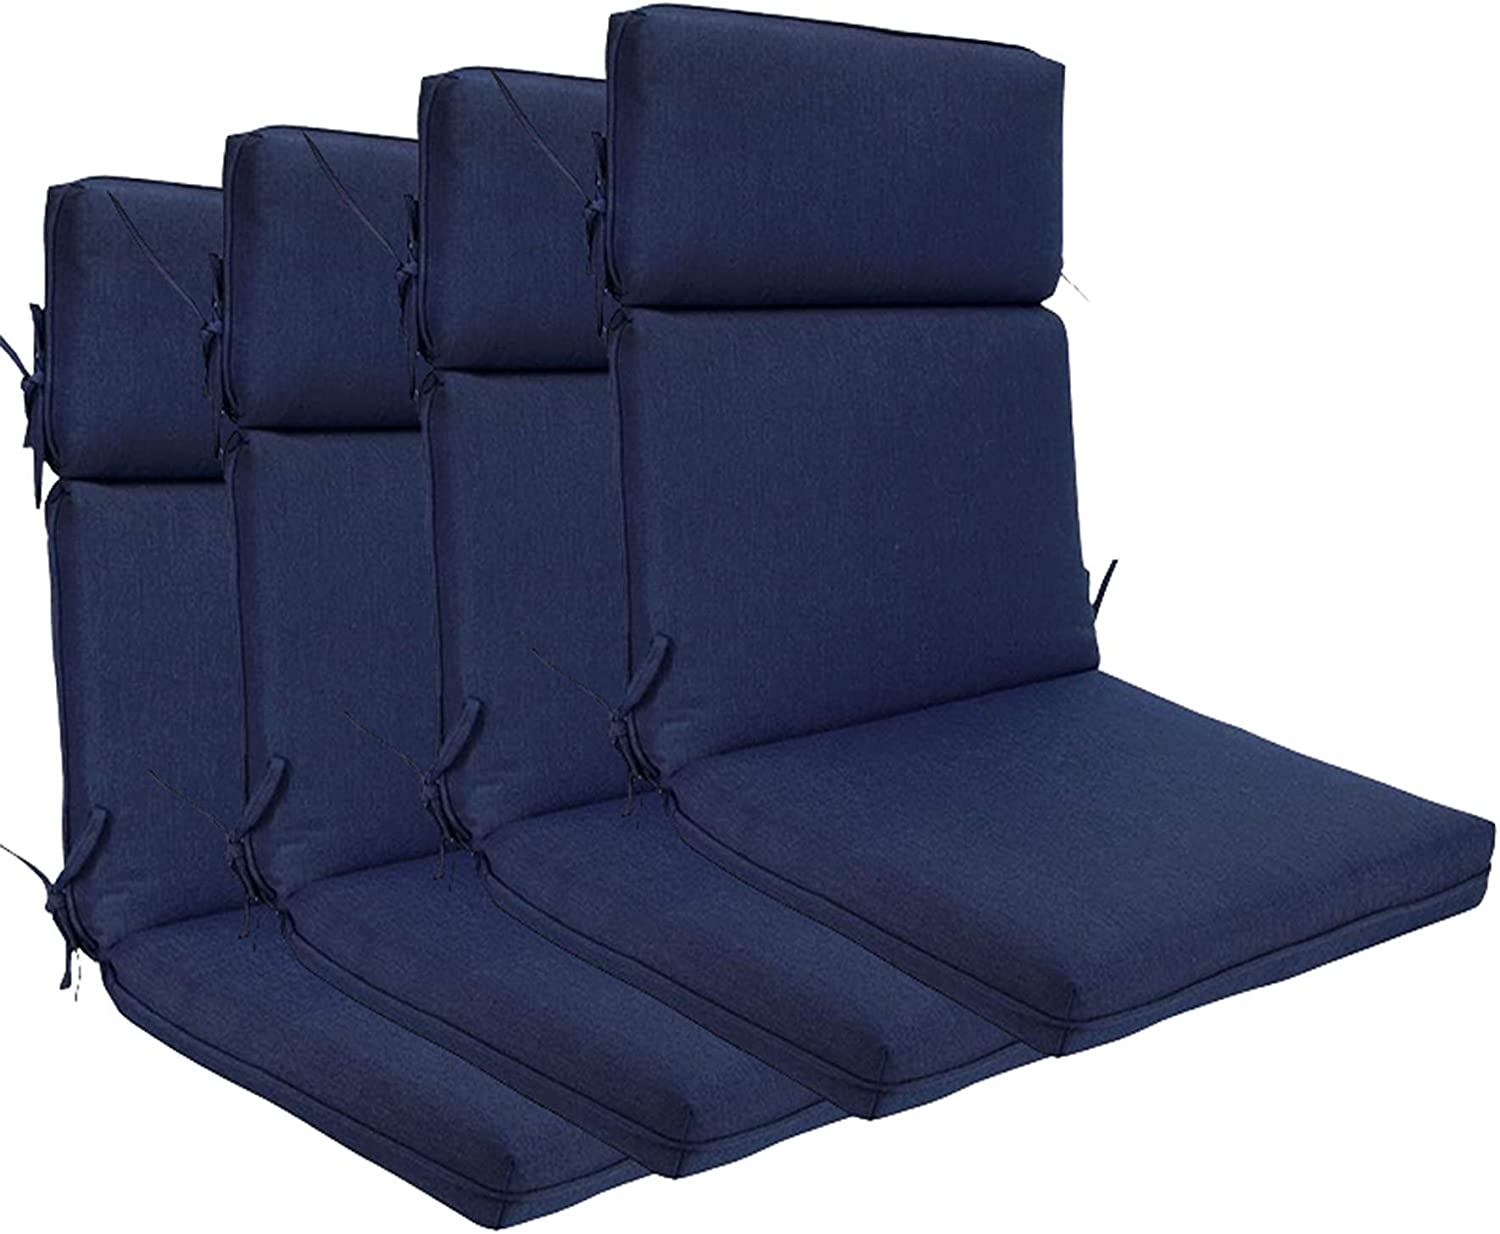 BOSSIMA Indoor Outdoor High Back Chair Cushions Replacement Patio Chair Seat Cushions (Olefin Navy Blue)